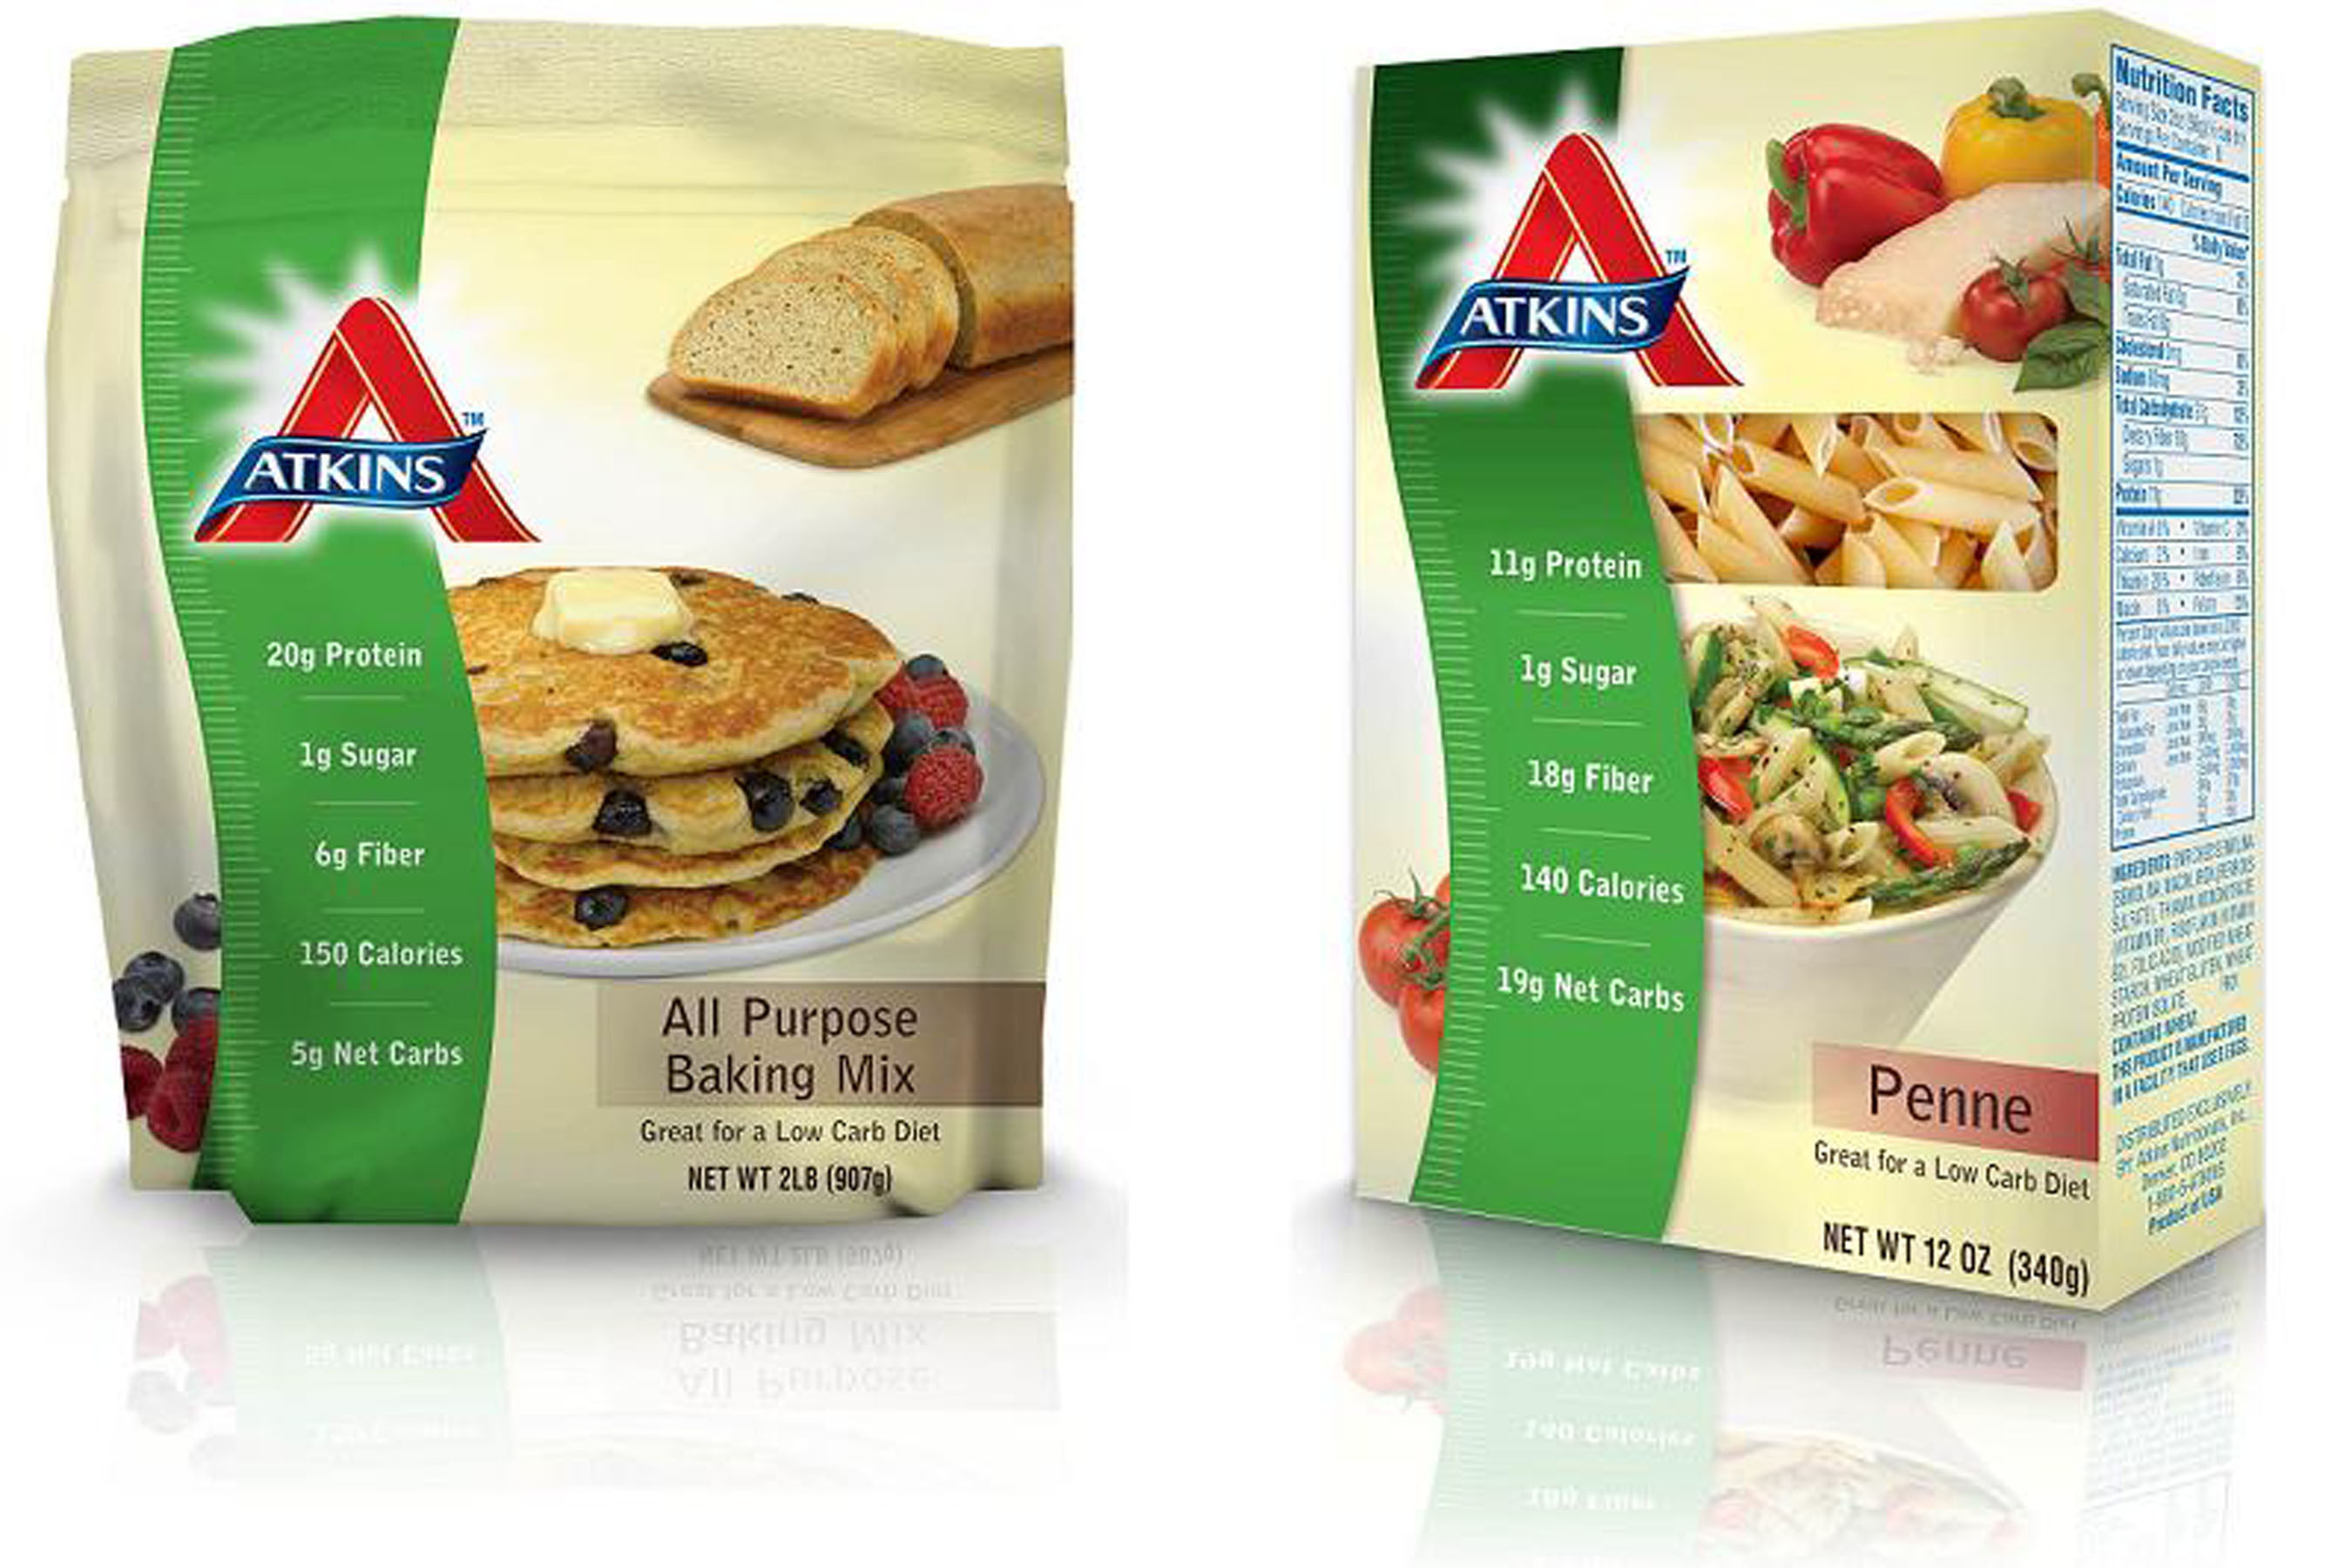 Atkins blog tour no time mommy for Atkins quick cuisine bake mix